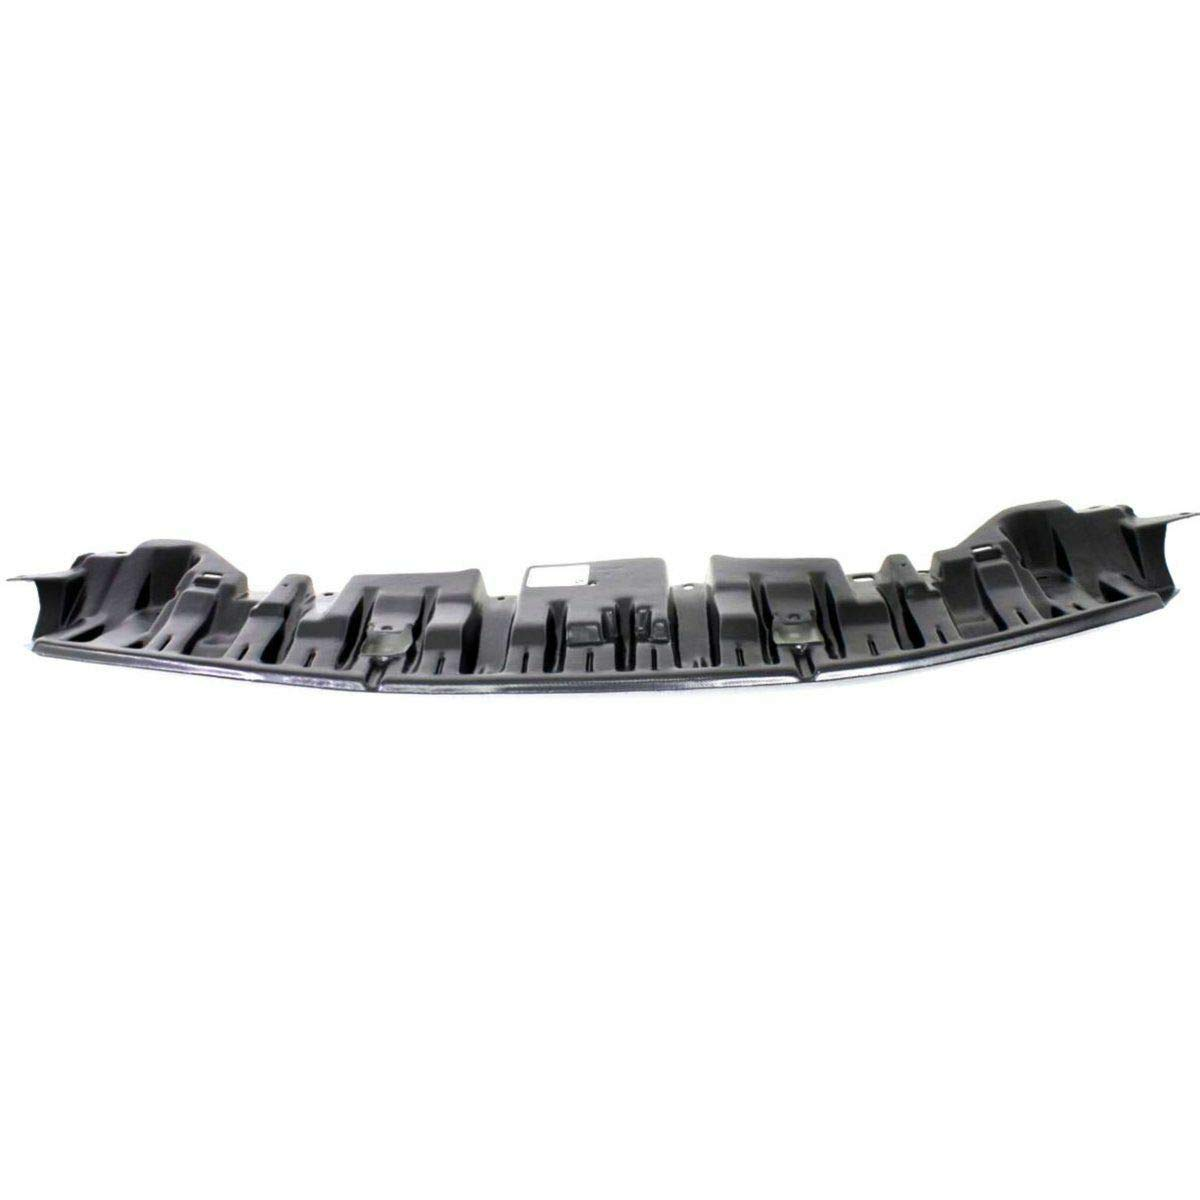 Parts N Go 2010-2011 Prius Front Engine Under Cover Splash Guard 5261847010 TO1228168